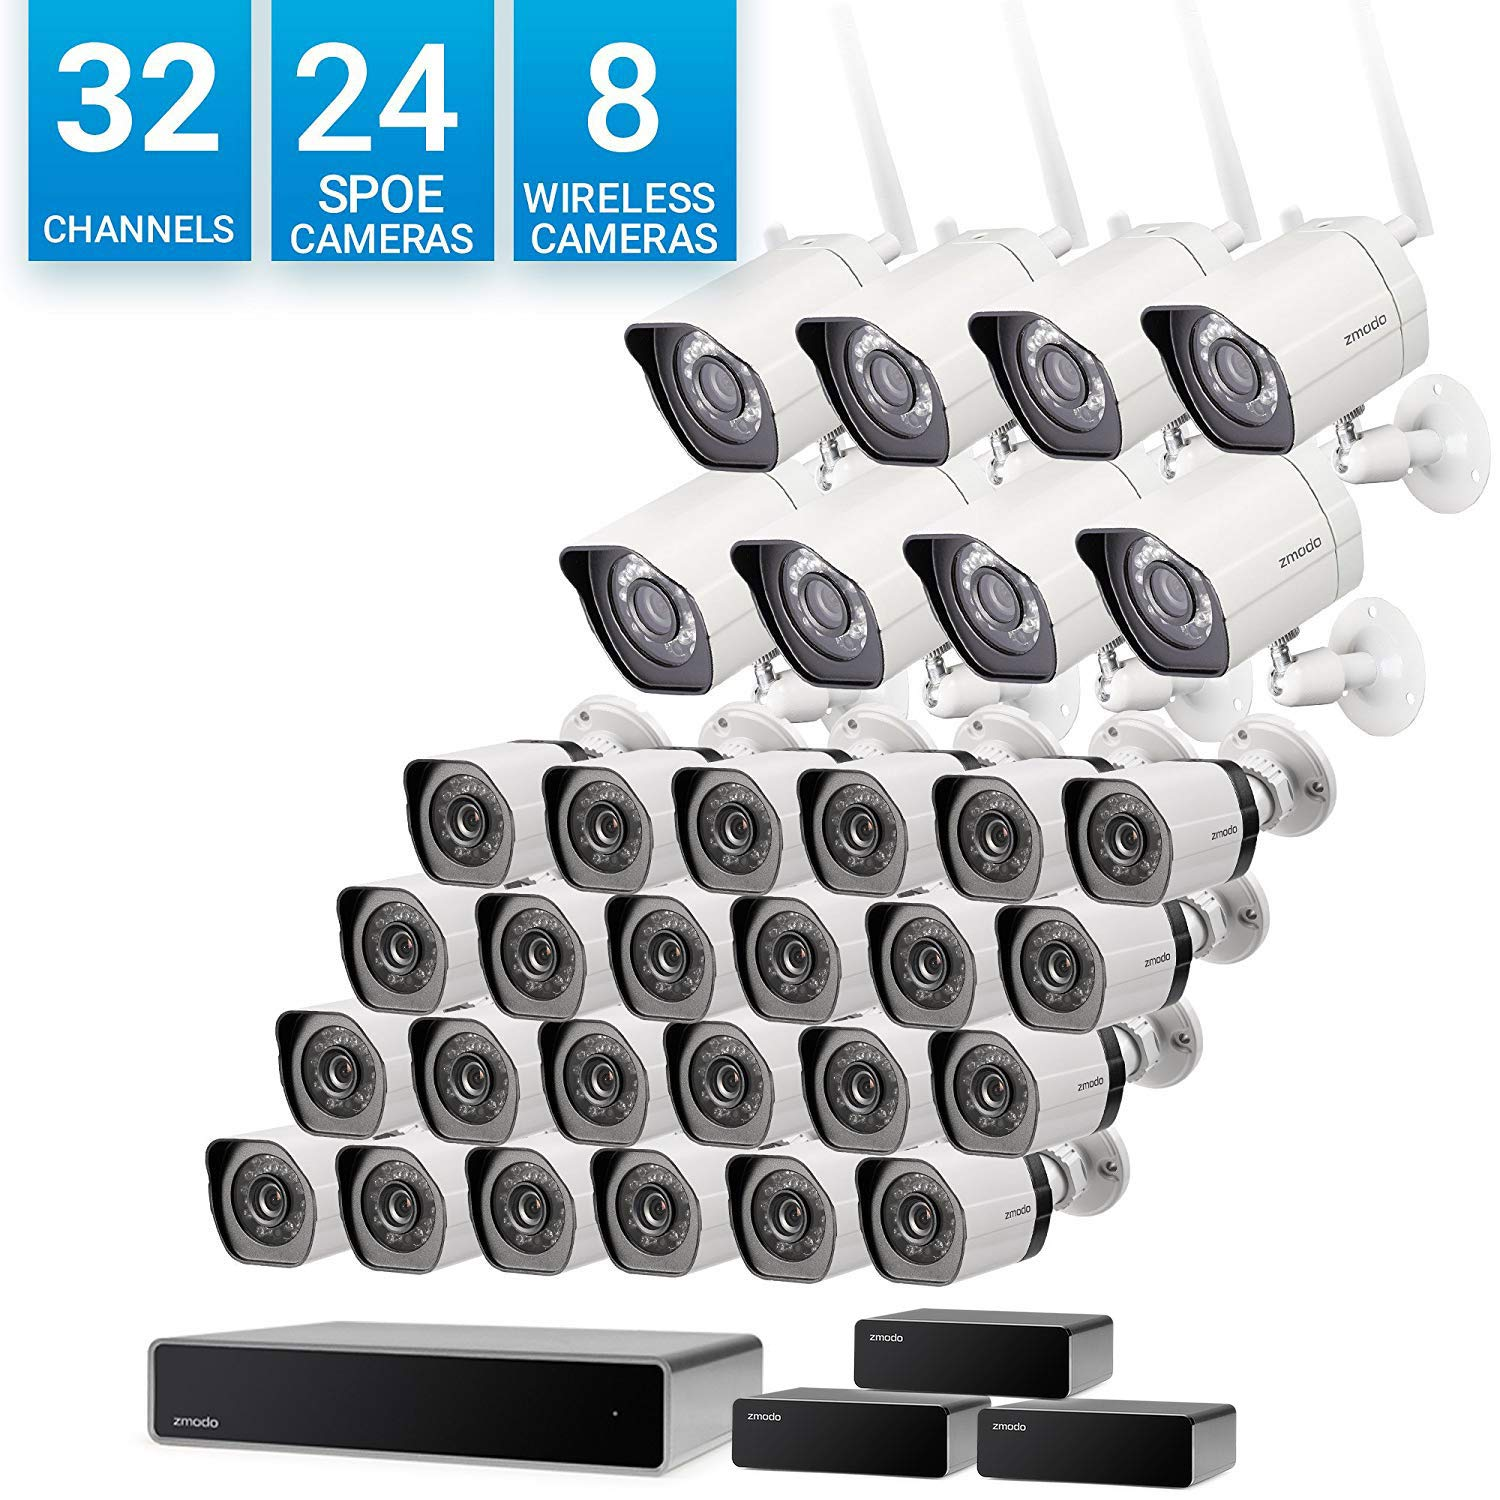 Zmodo 32 Channel 1080p Network Surveillance NVR